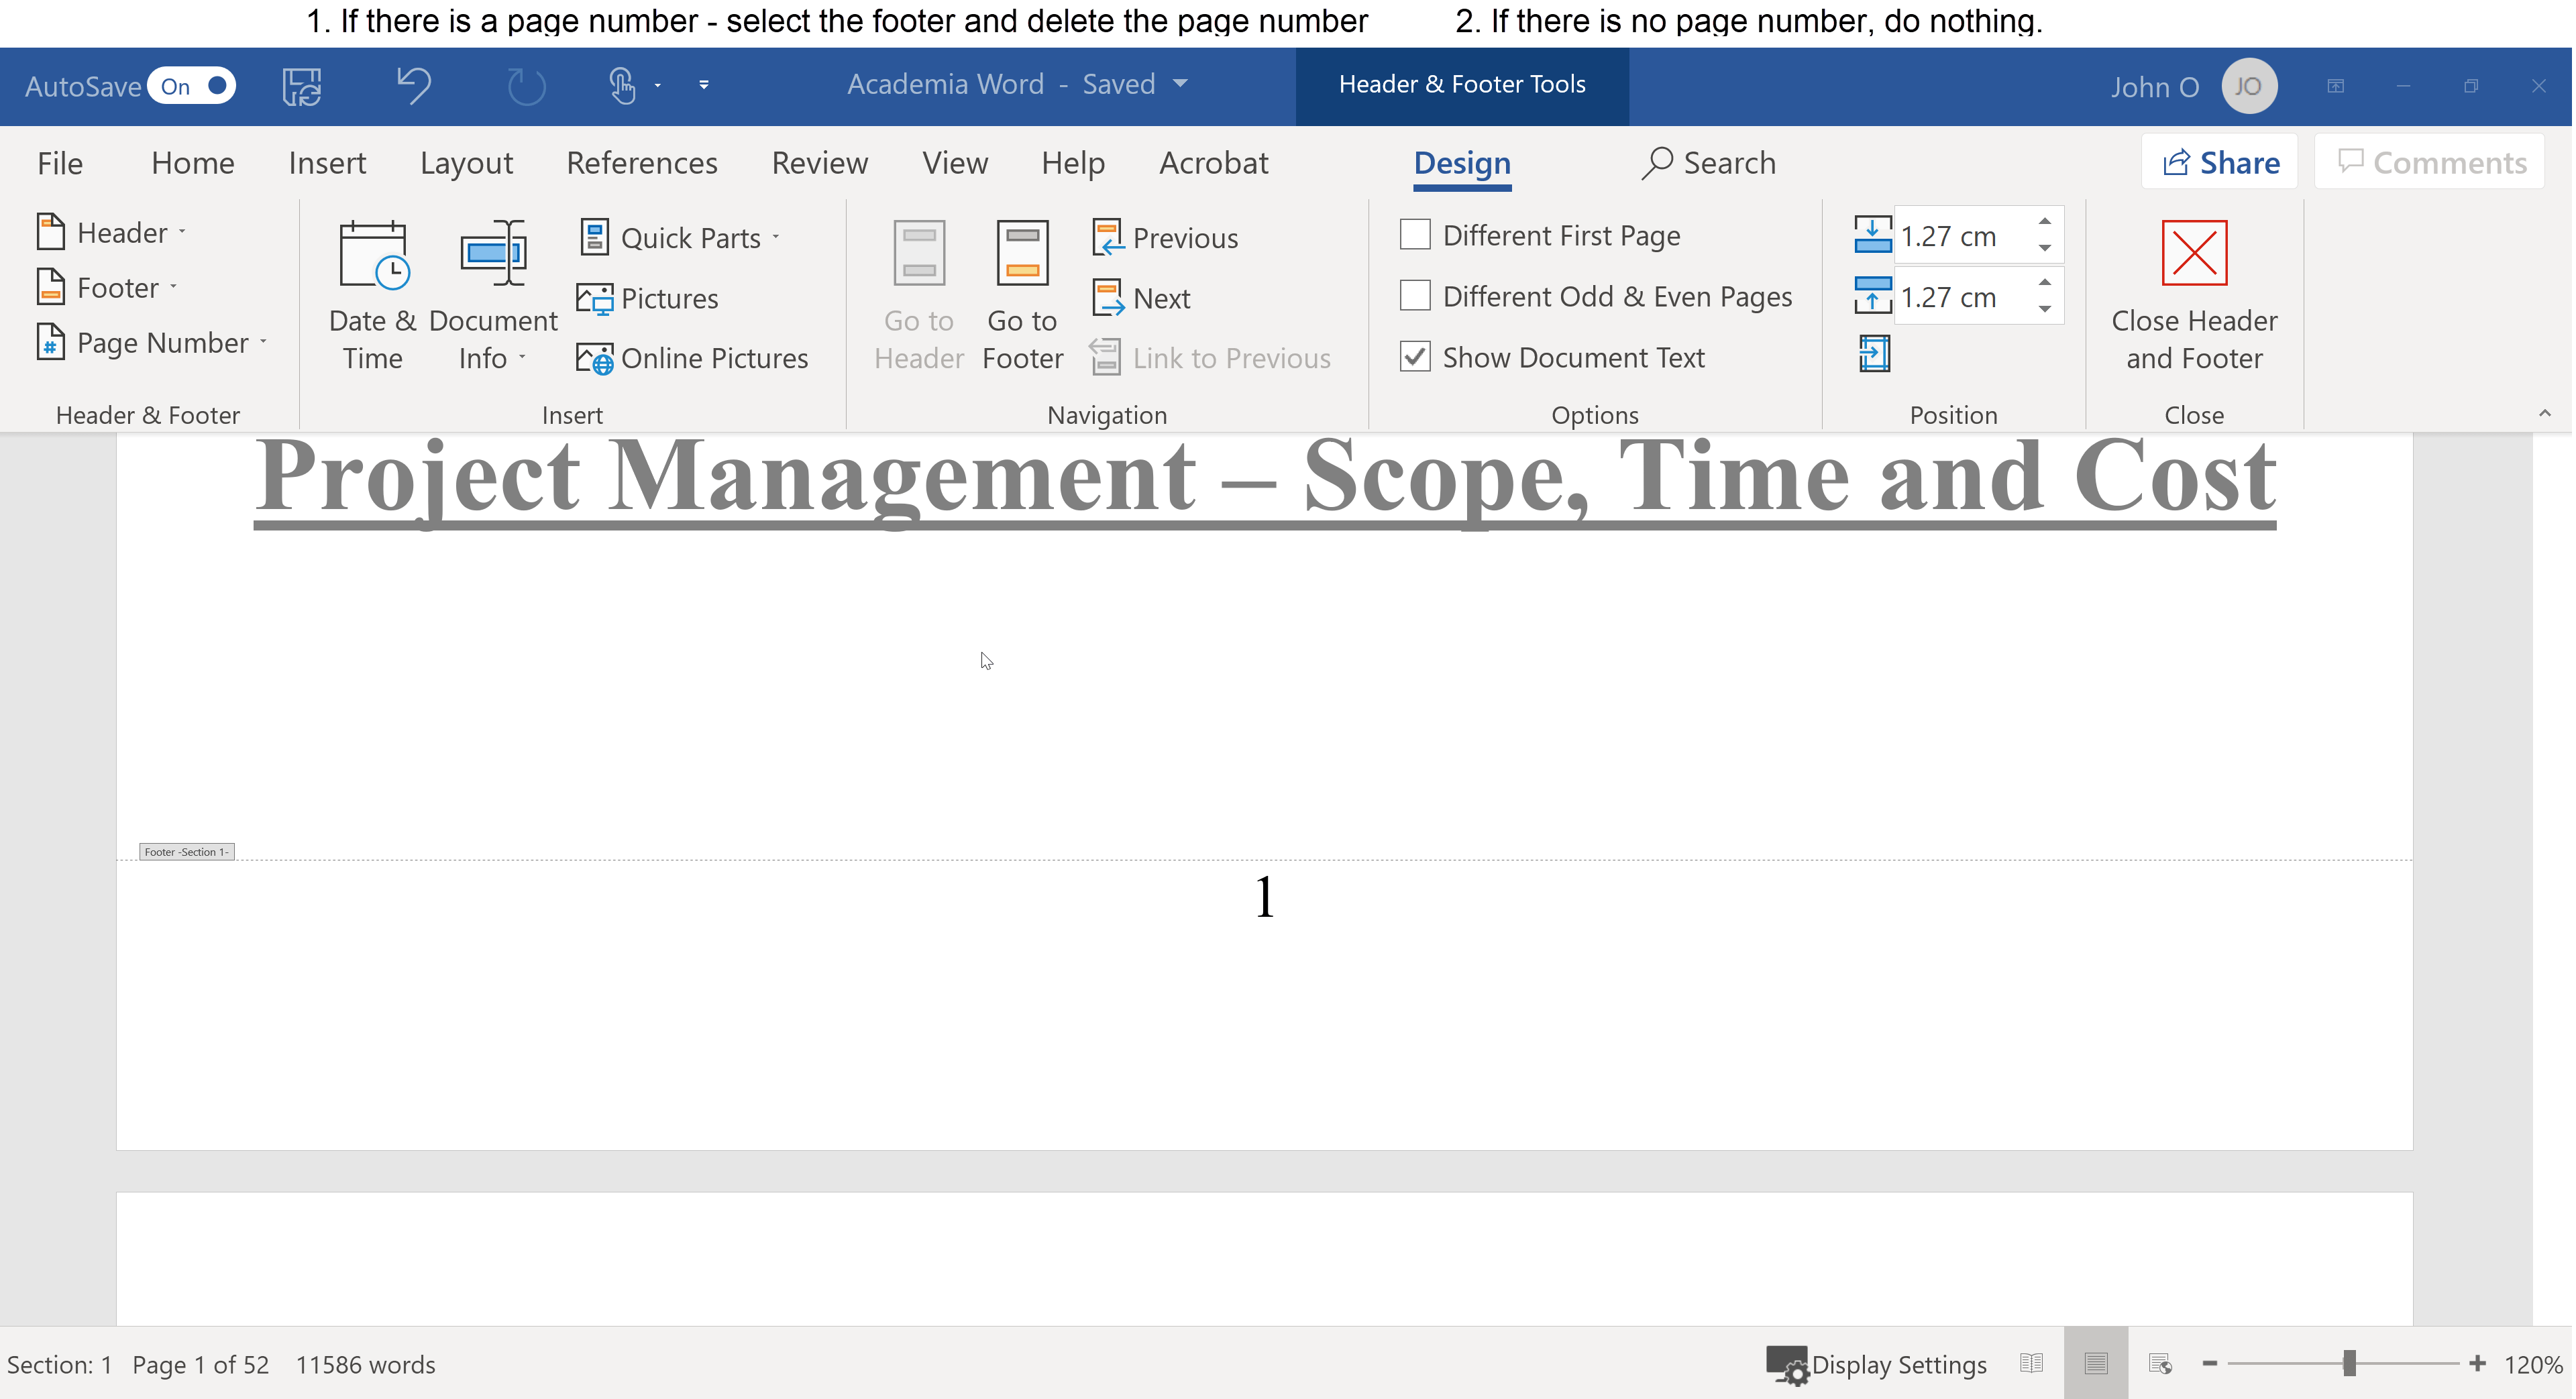 Ensure the Title Page has no page number. If there is one, select the footer and delete the page number. If there is no page number in the footer, then do nothing.